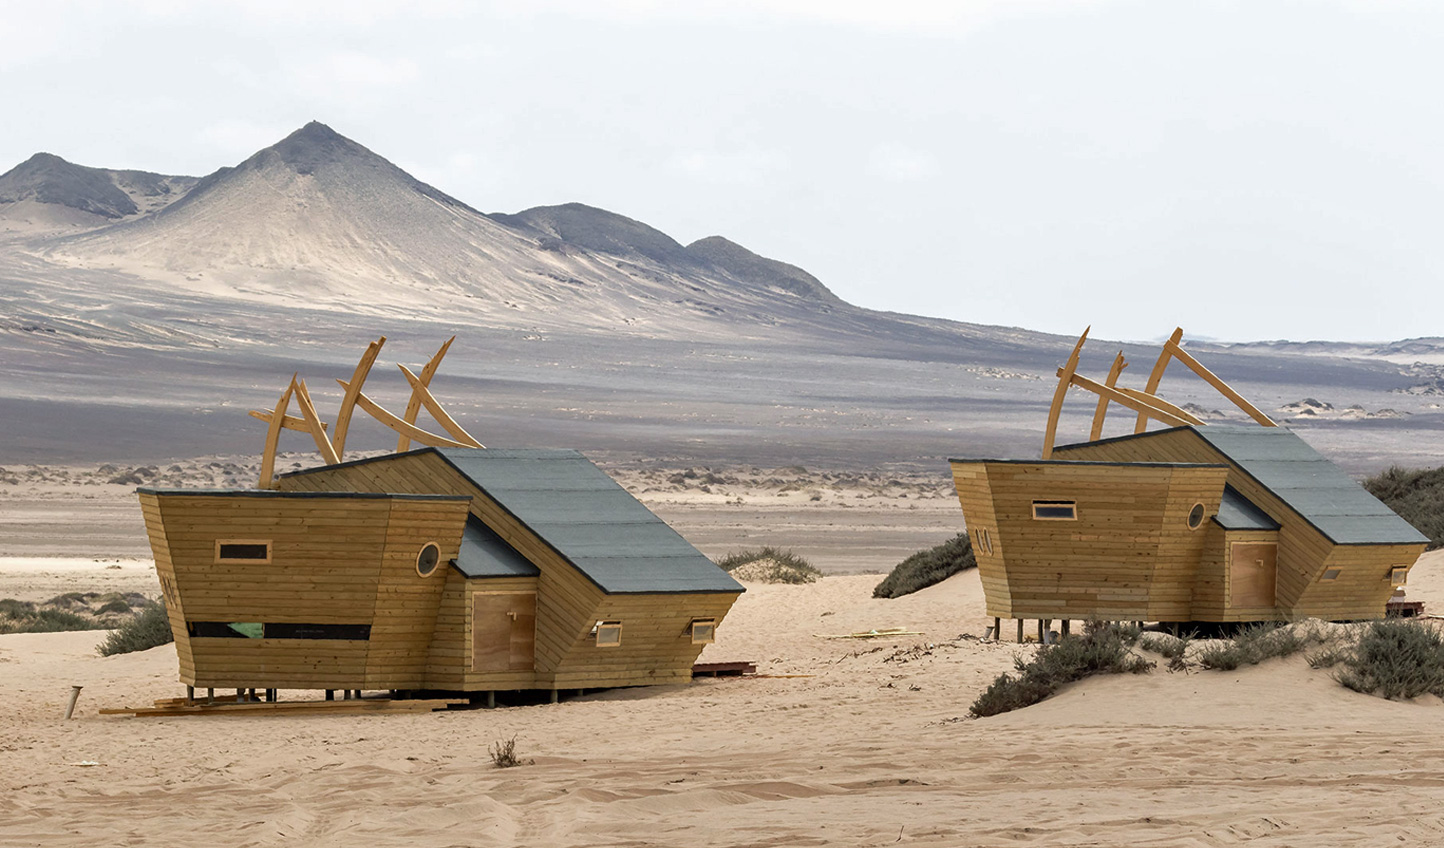 Stay at the Skeleton Coast's Shipwreck Lodge